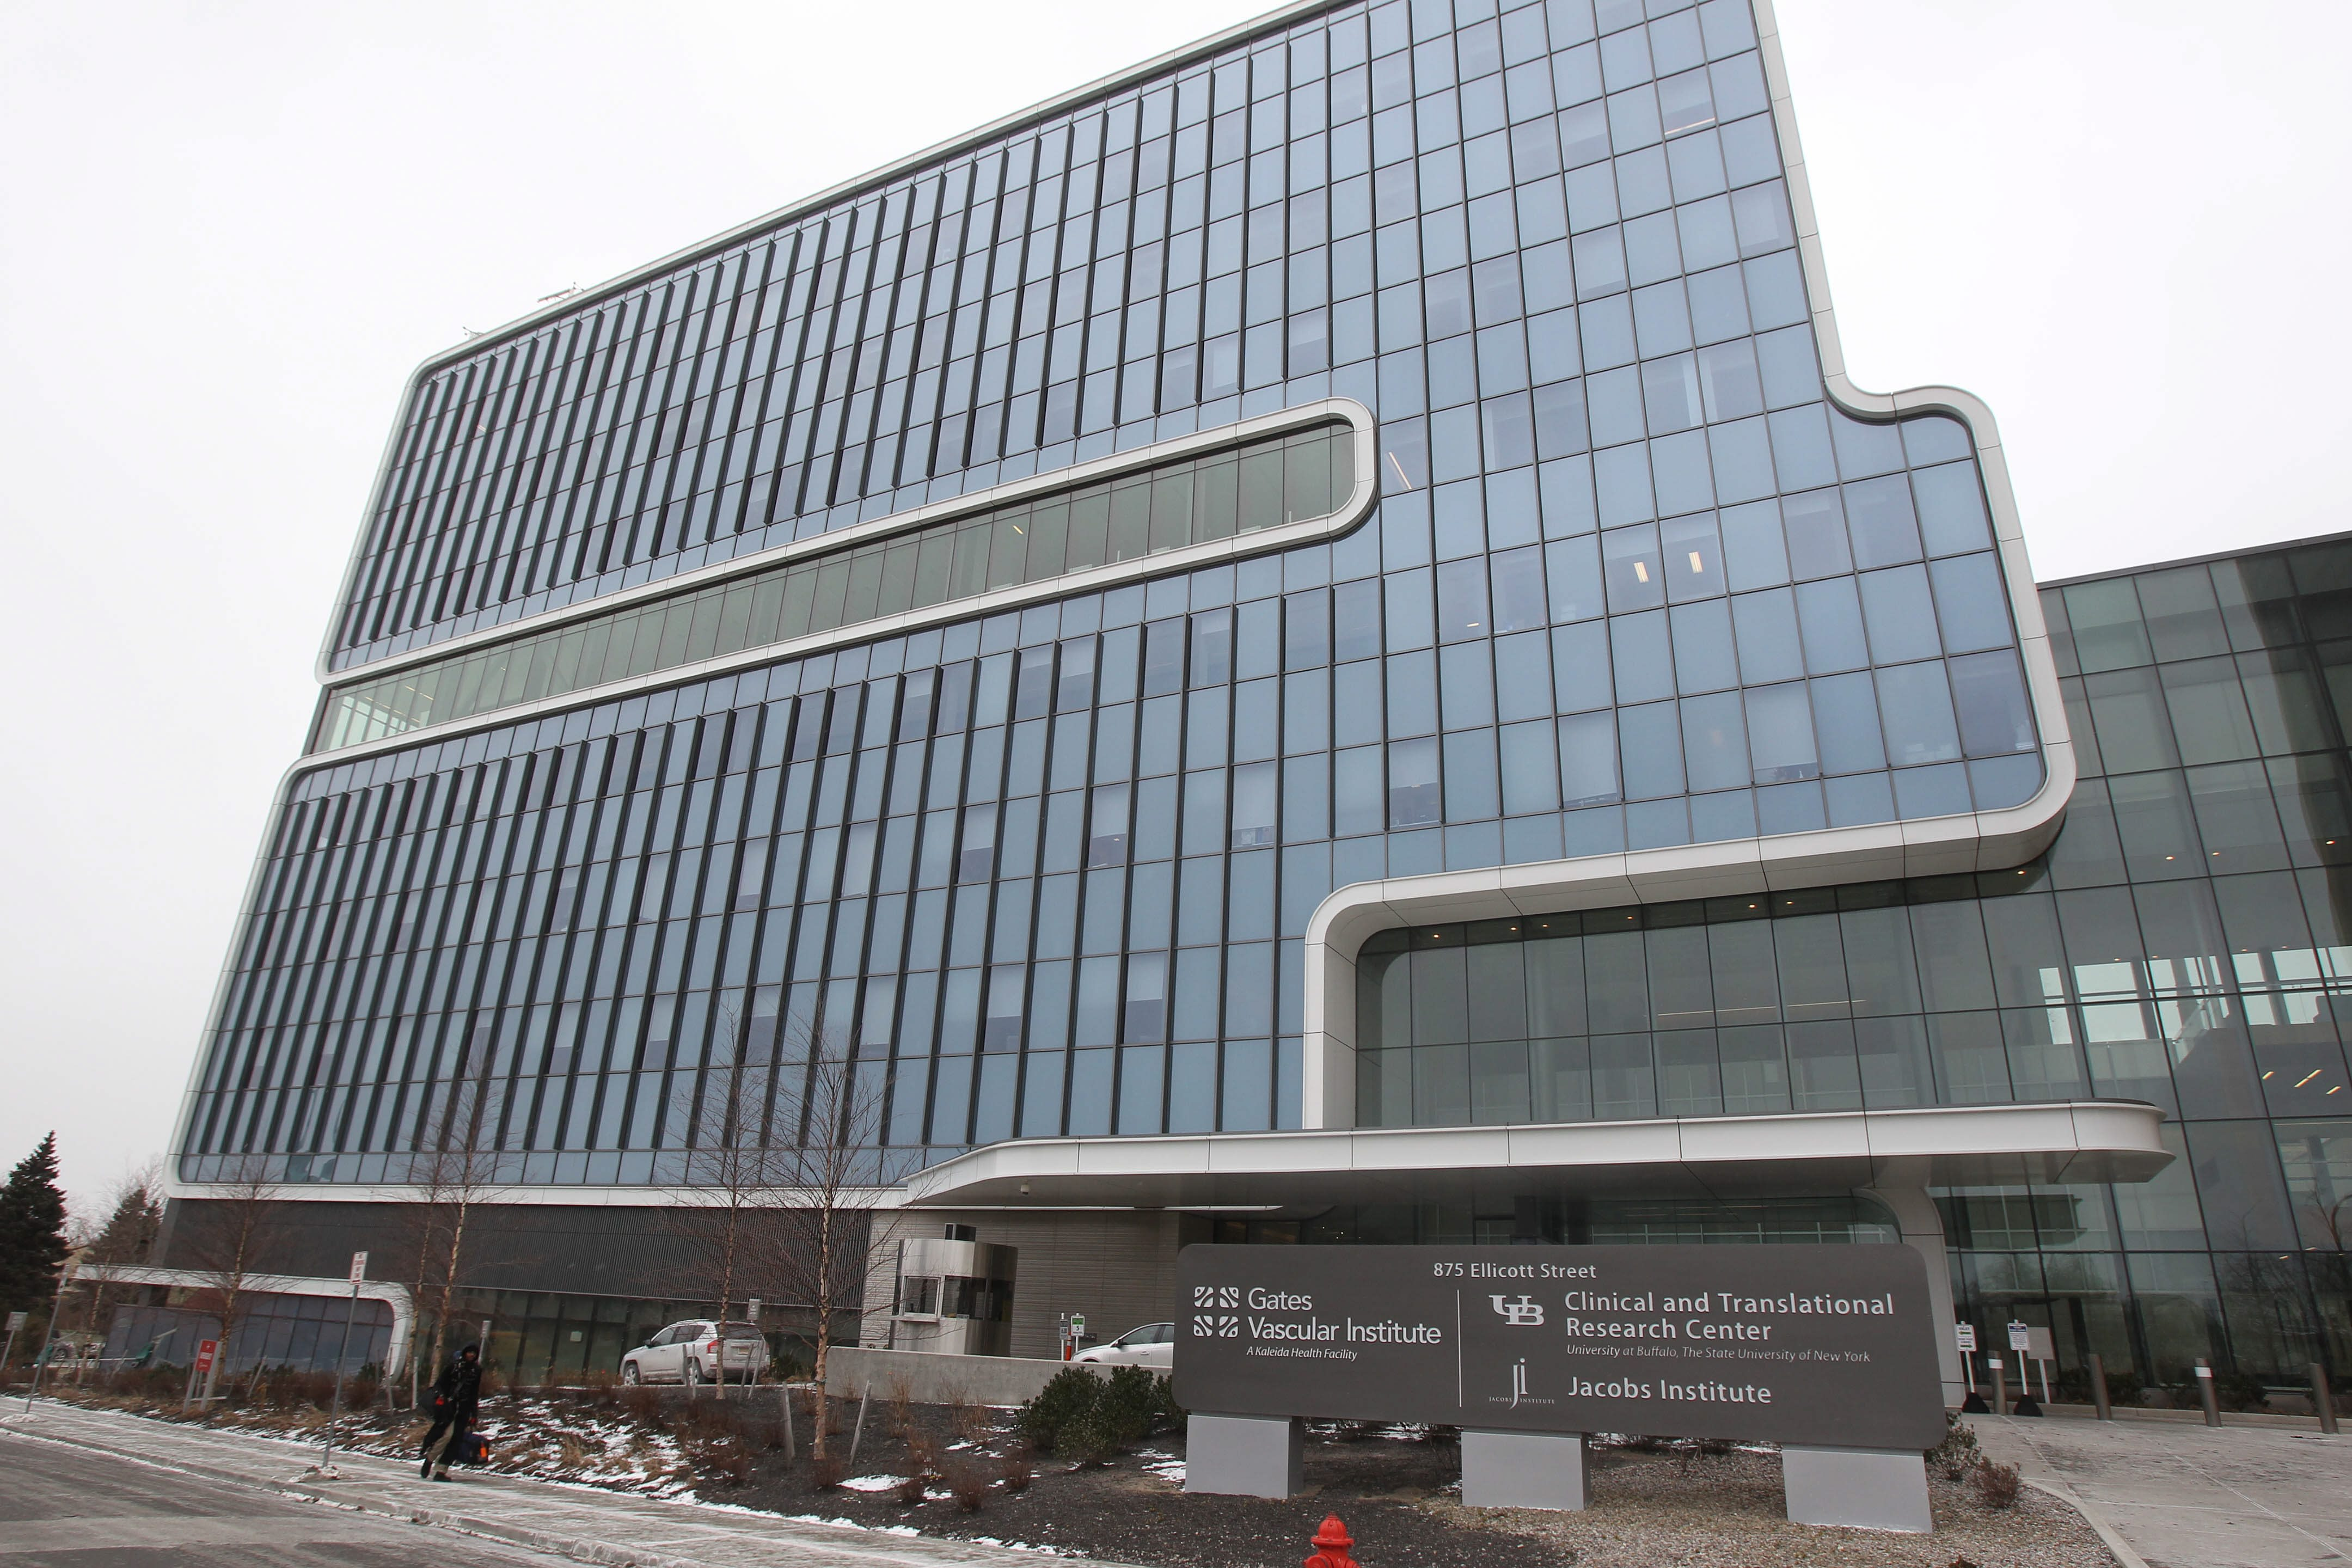 The UB Clinical and Translational Reseach Institute, which recently changed its name, shares a building with the Gates Vascular Institute. (Mark Mulville / Buffalo News file photo)